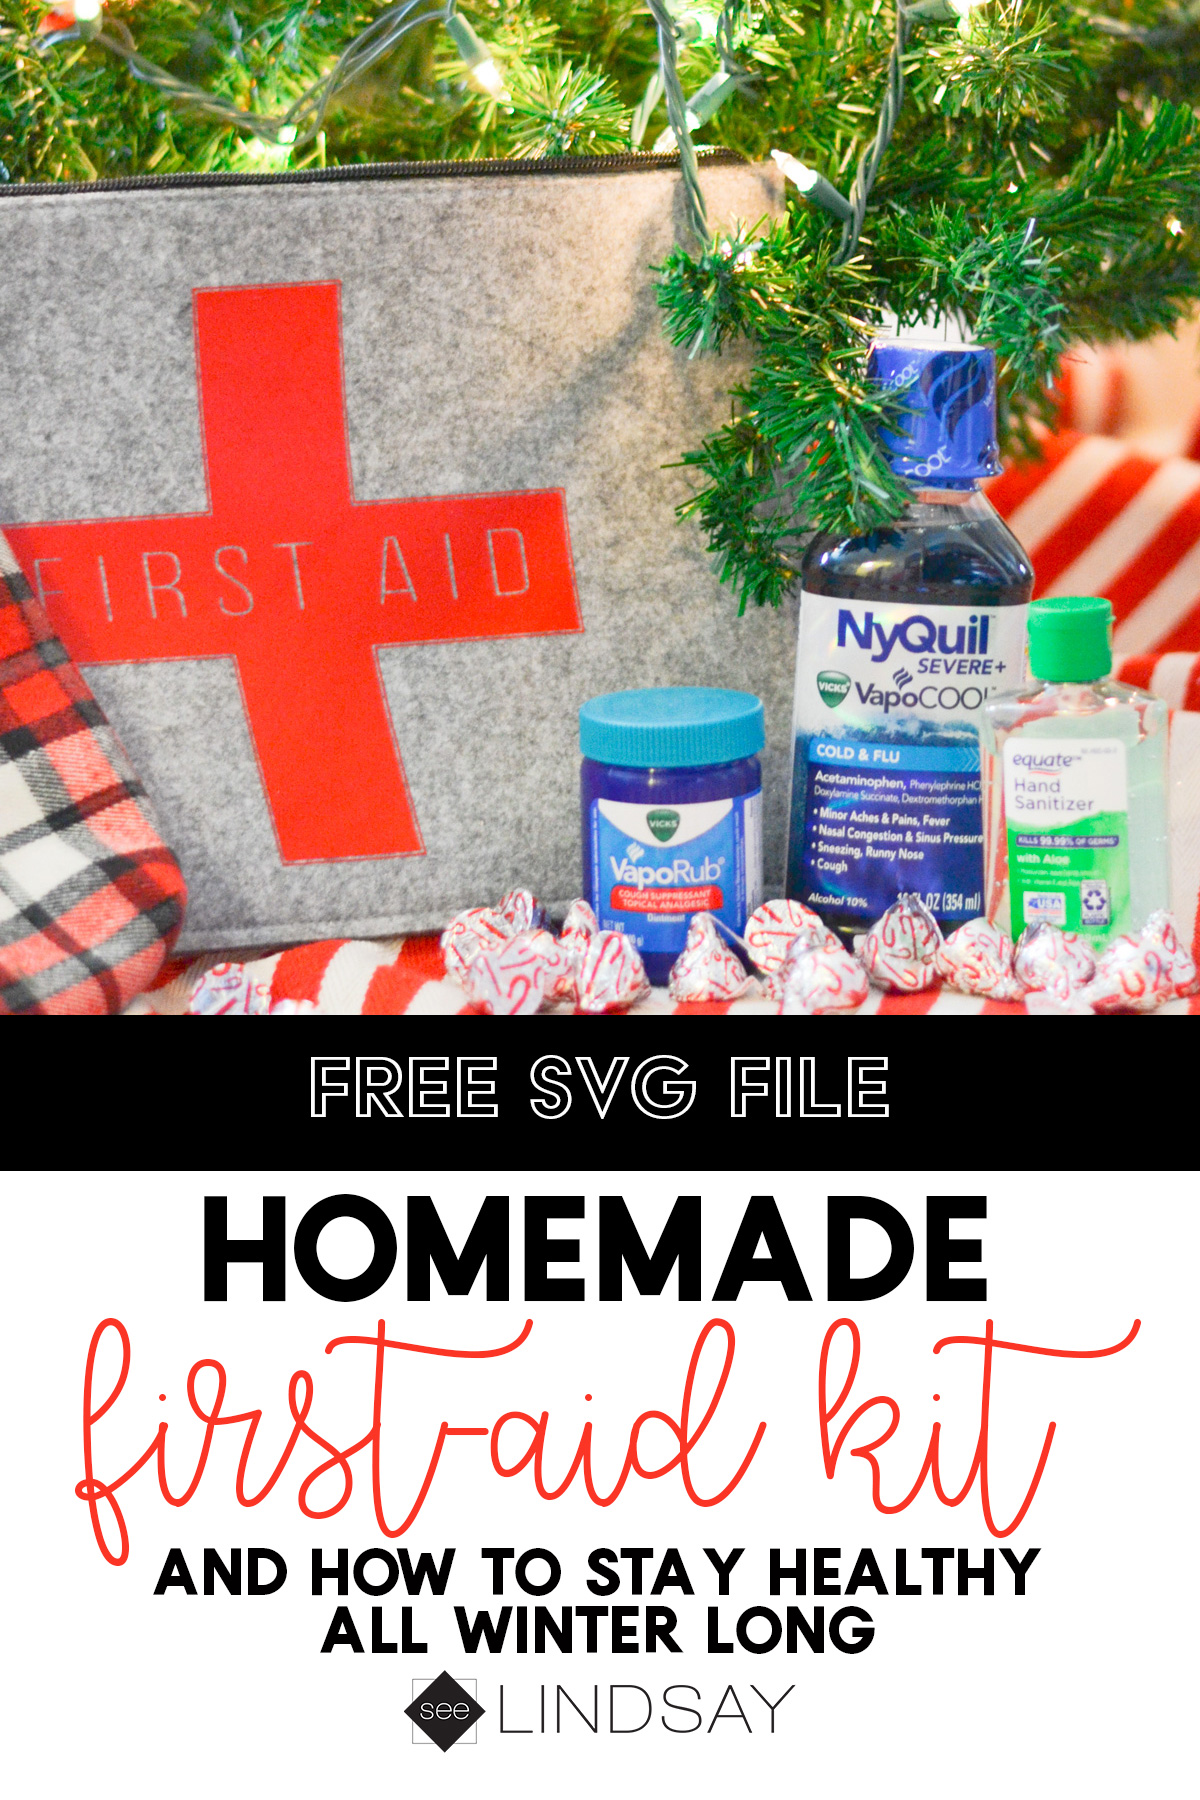 ... is busy enough as it is but you've got to learn ways to help you combat  sickness so you won't add more stress to the holiday season. Here are some  tips ...